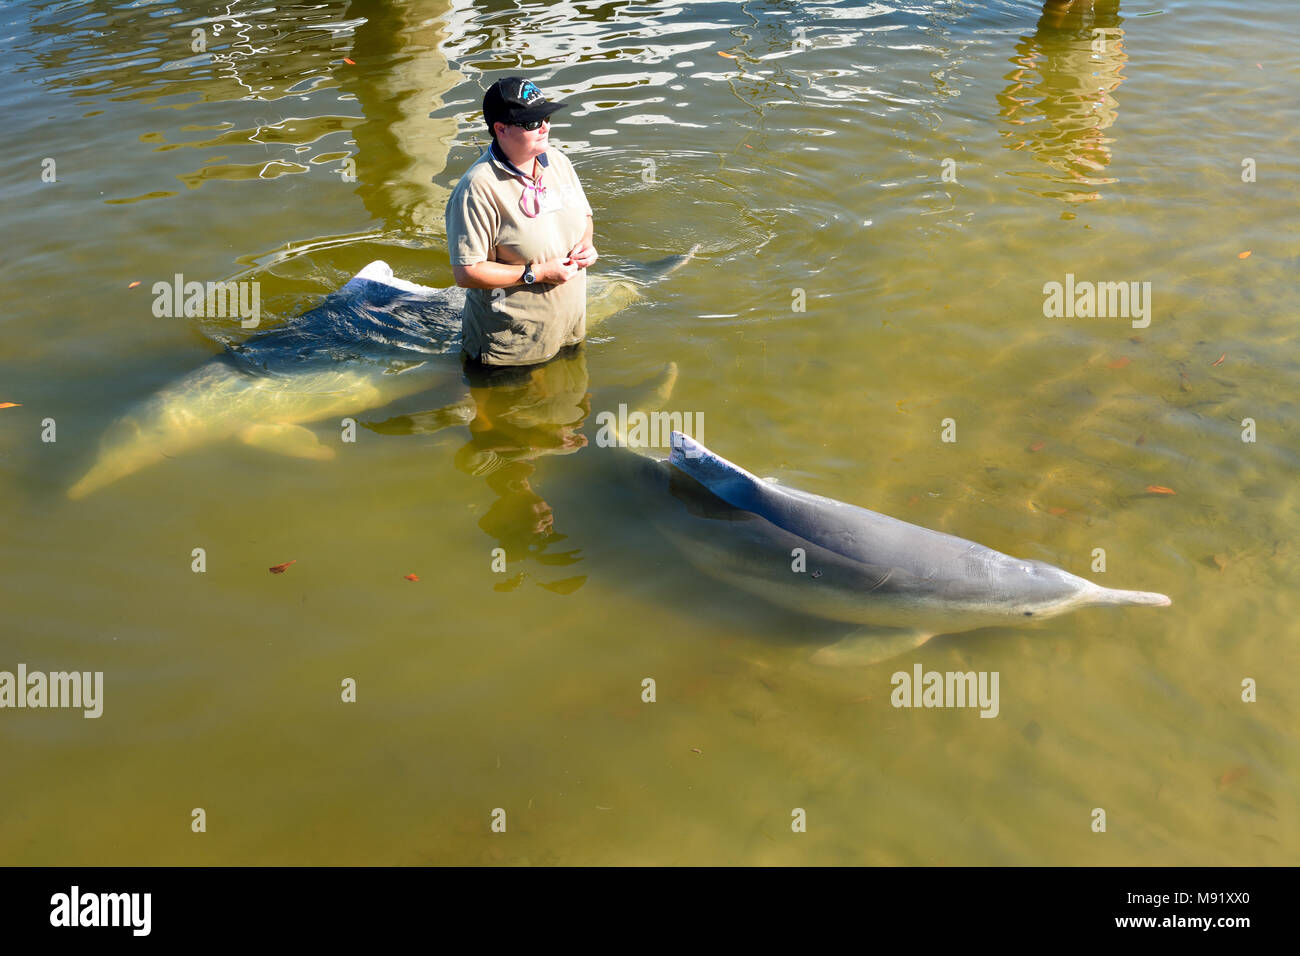 Tin Can Bay, Queensland, Australia - December 24, 2017. Barnacles Dolphin Centre volunteer standing in the water with two Australian Humpback dolphins - Stock Image